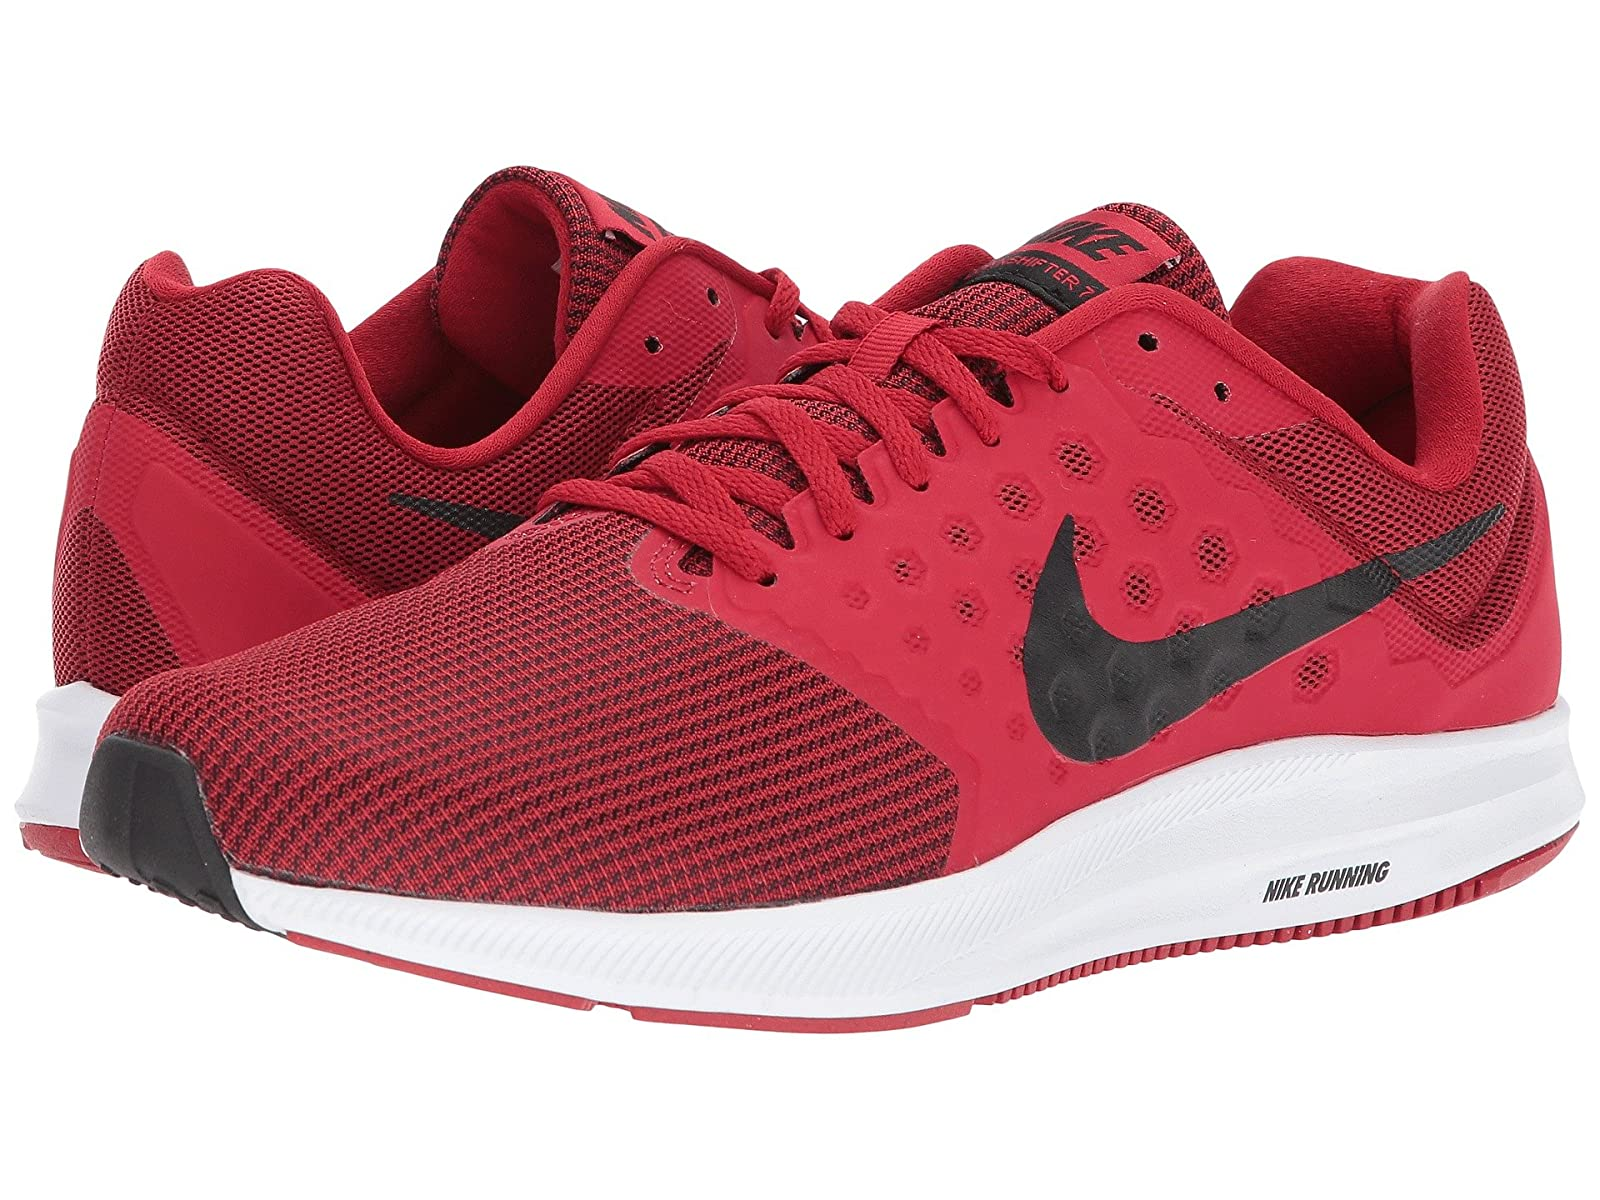 Nike Downshifter 7Atmospheric grades have affordable shoes